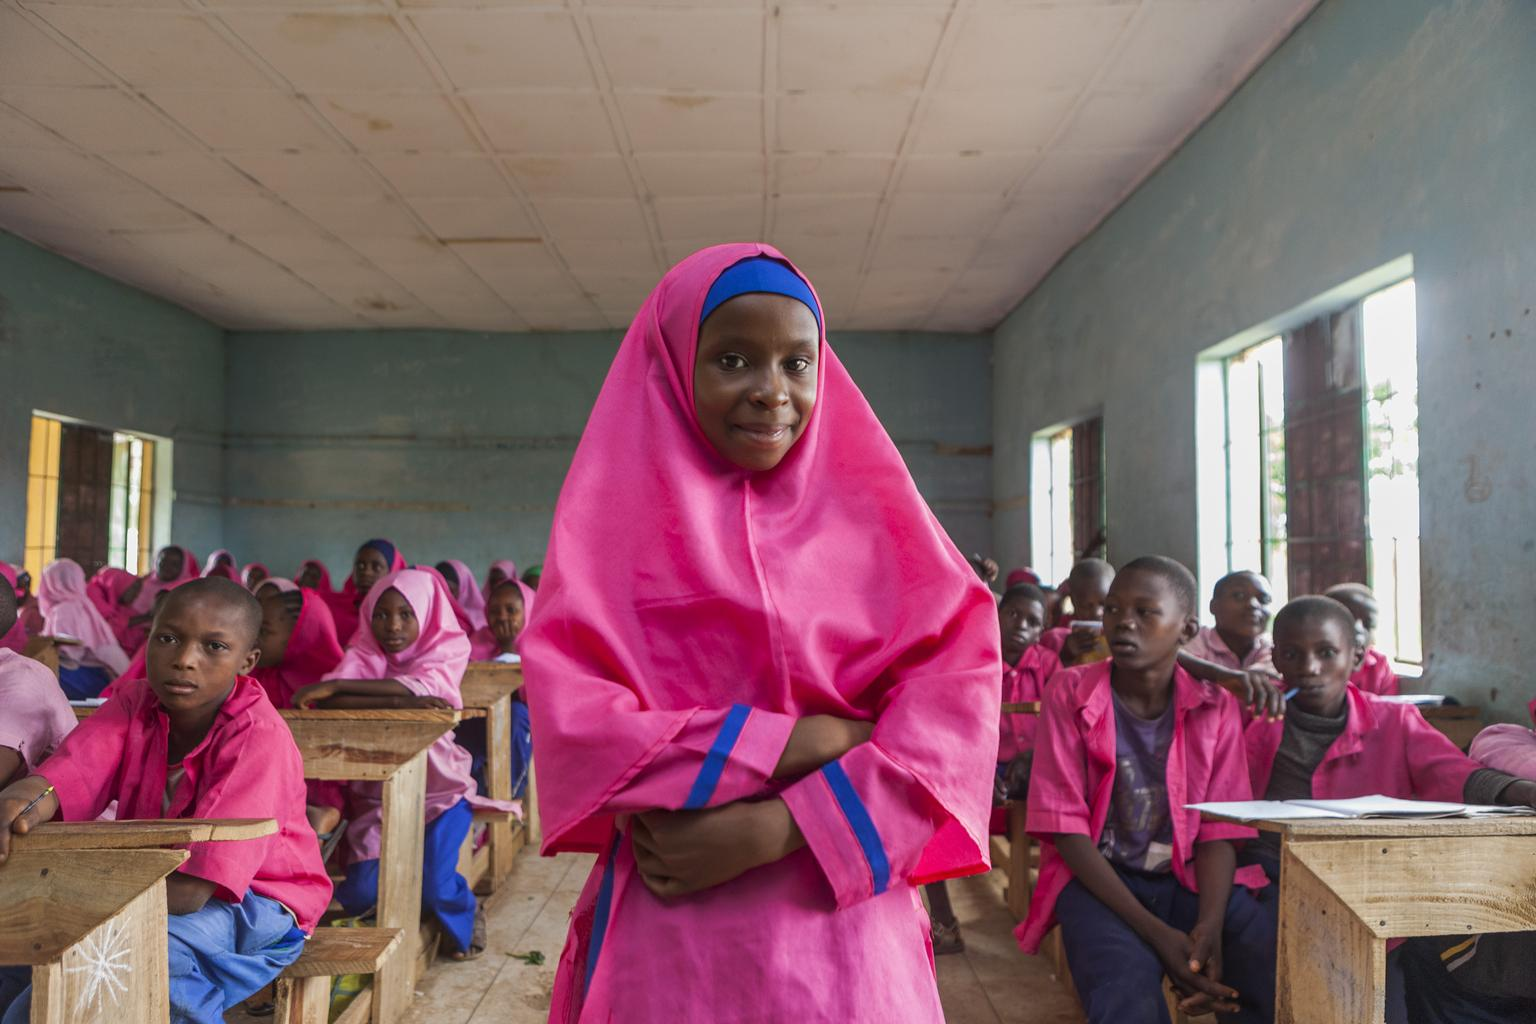 Nailatu (12) attends primary school in the town of Toro, Bauchi State, Nigeria. Nigeria continues to face challenges in ensuring quality education for children – especially girls.